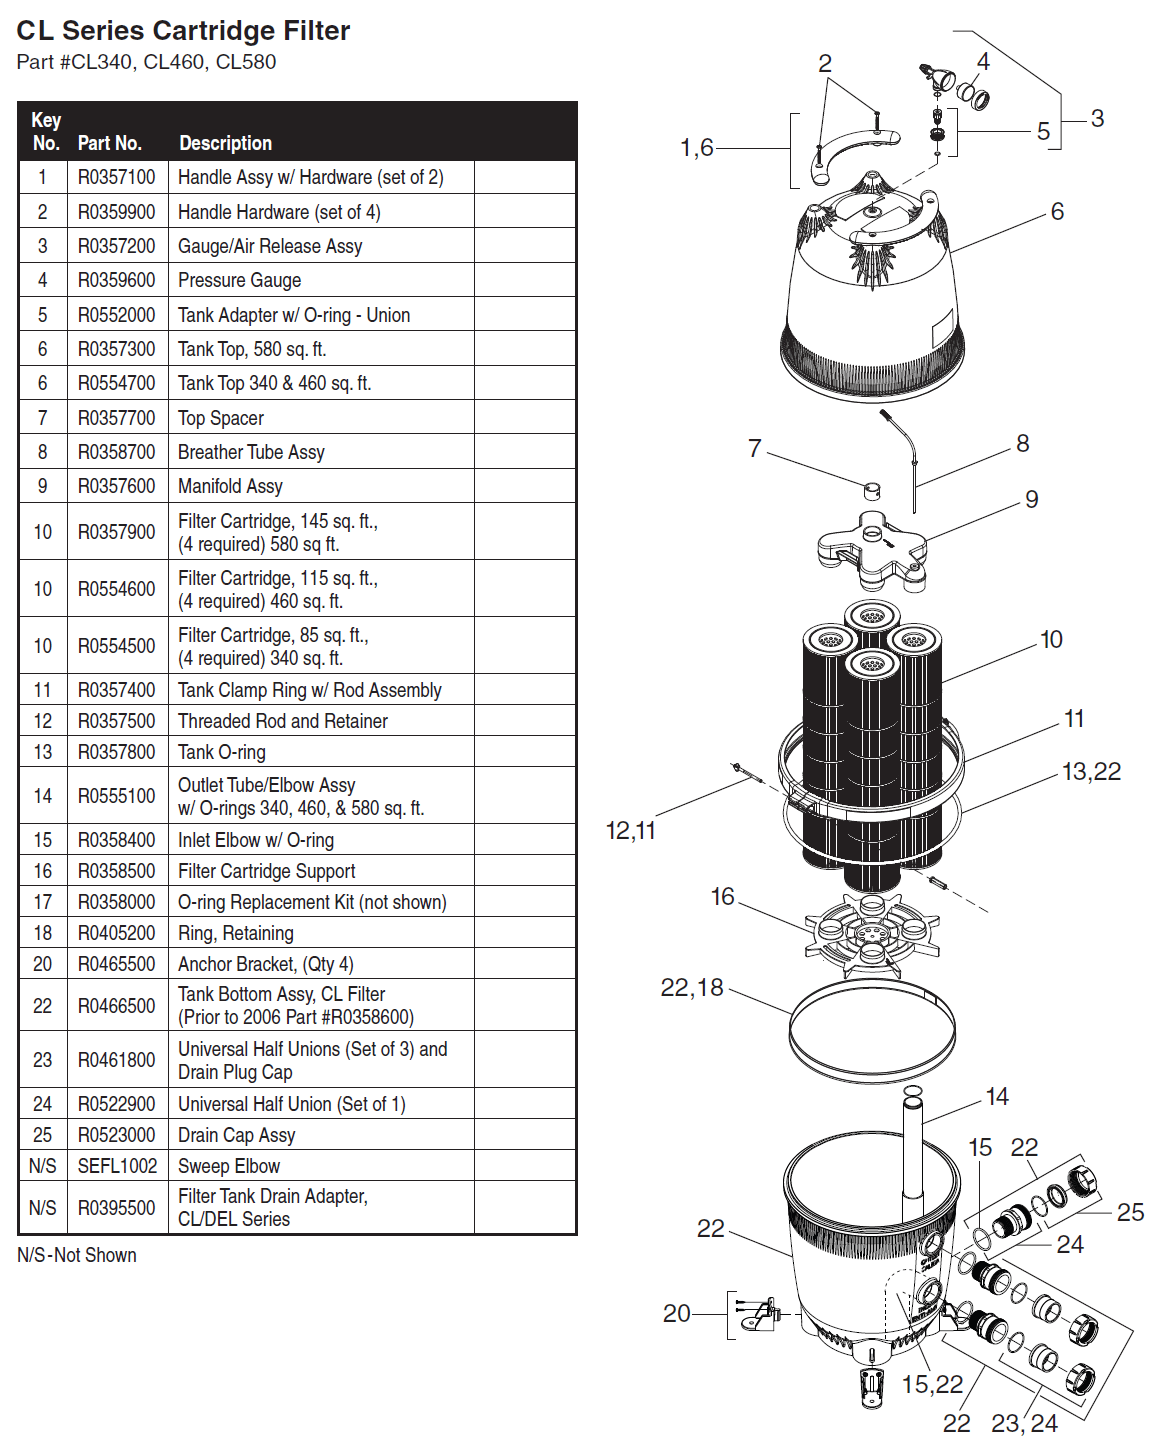 Jandy Cl Series Cartridge Filter Parts